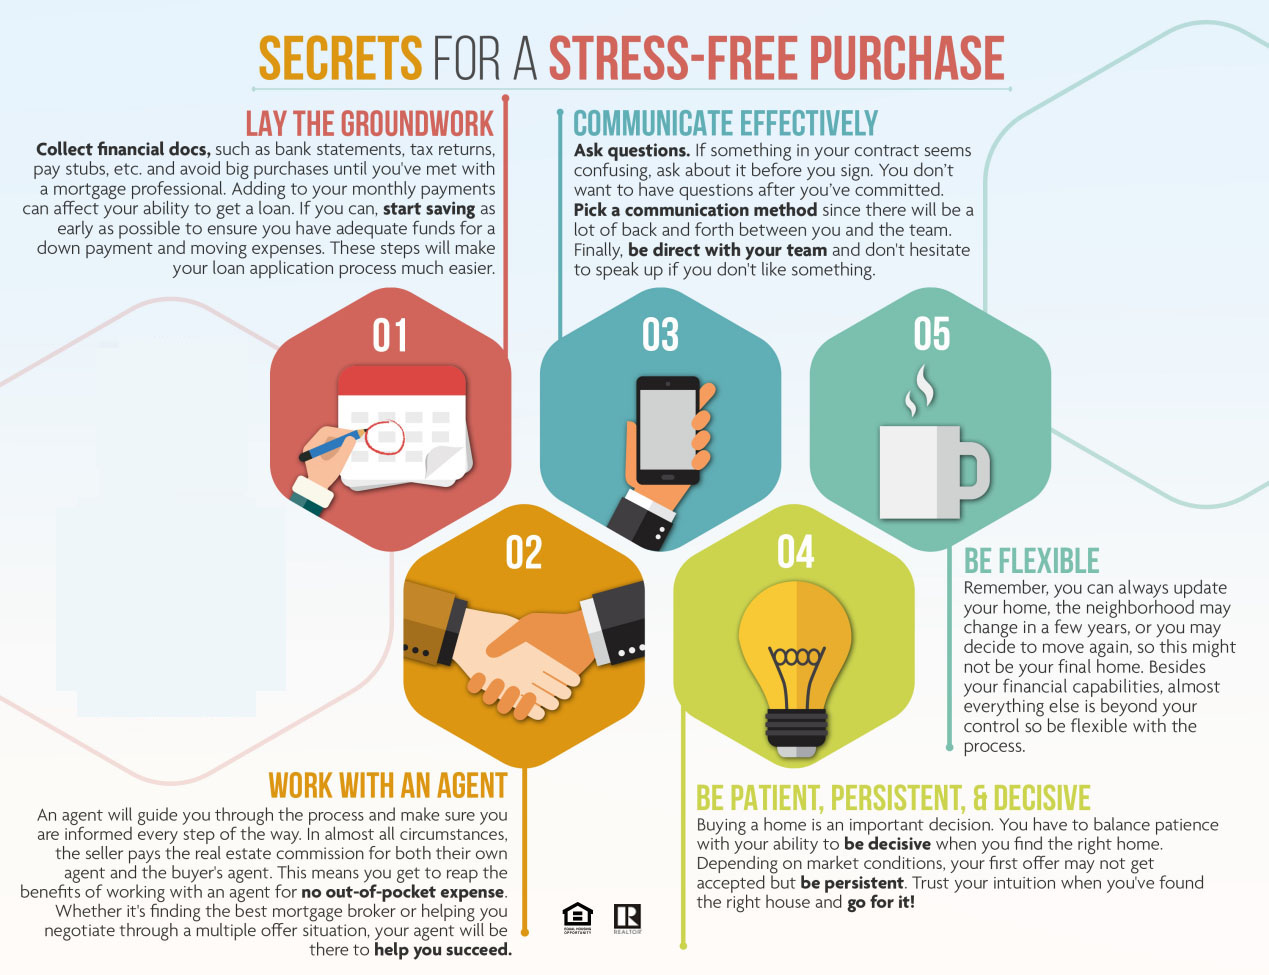 Secrets-for-A-Stress-Free-Purchase